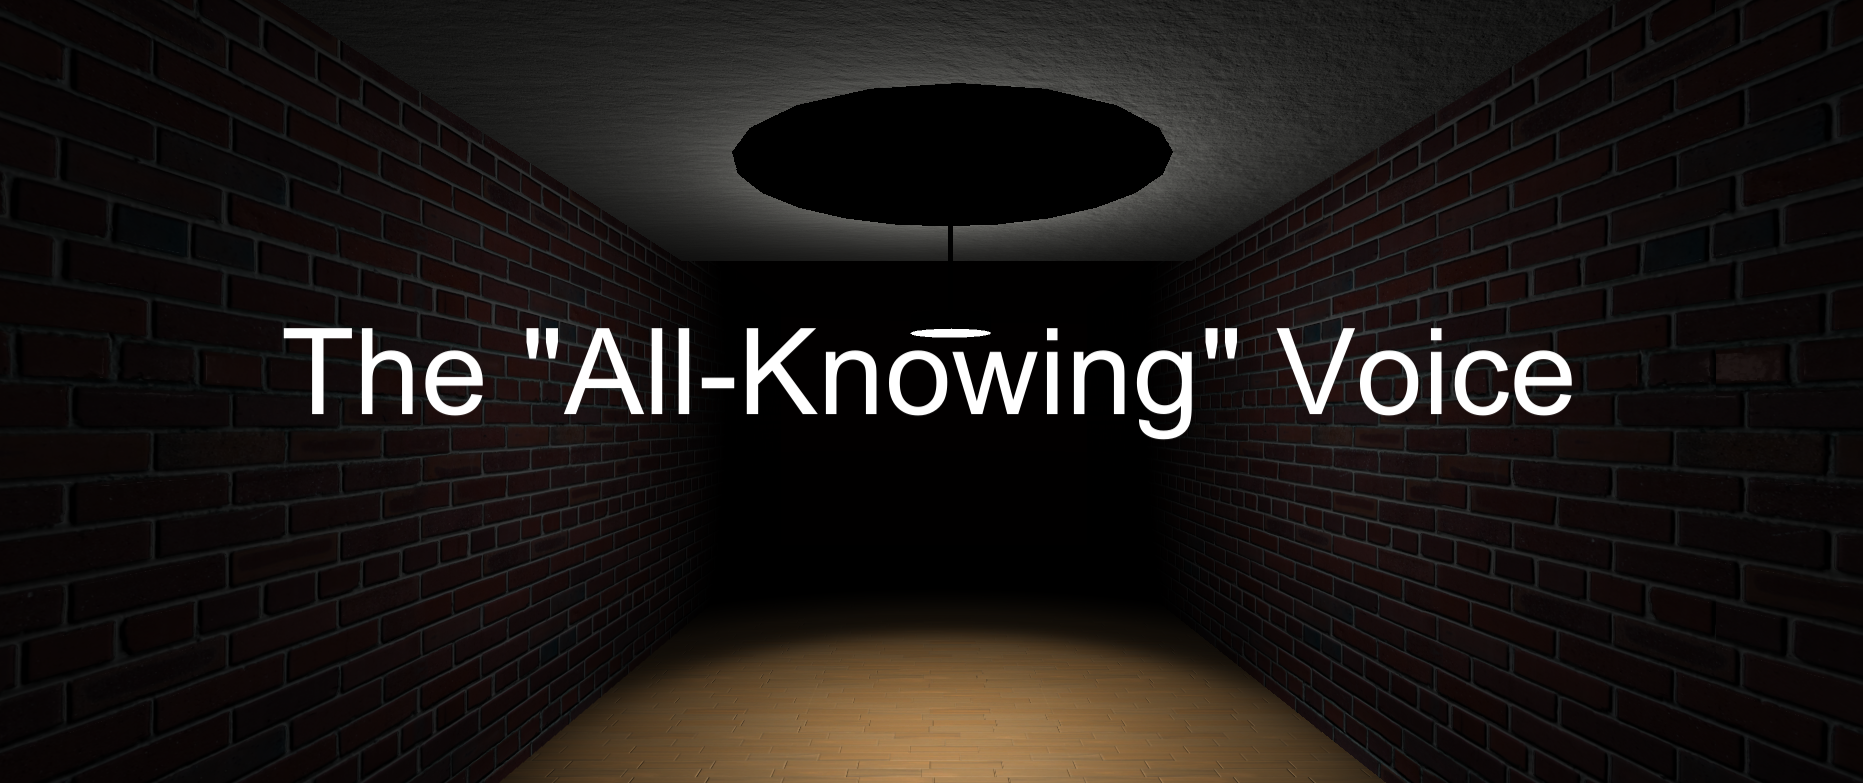 "The ""All-Knowing"" Voice"